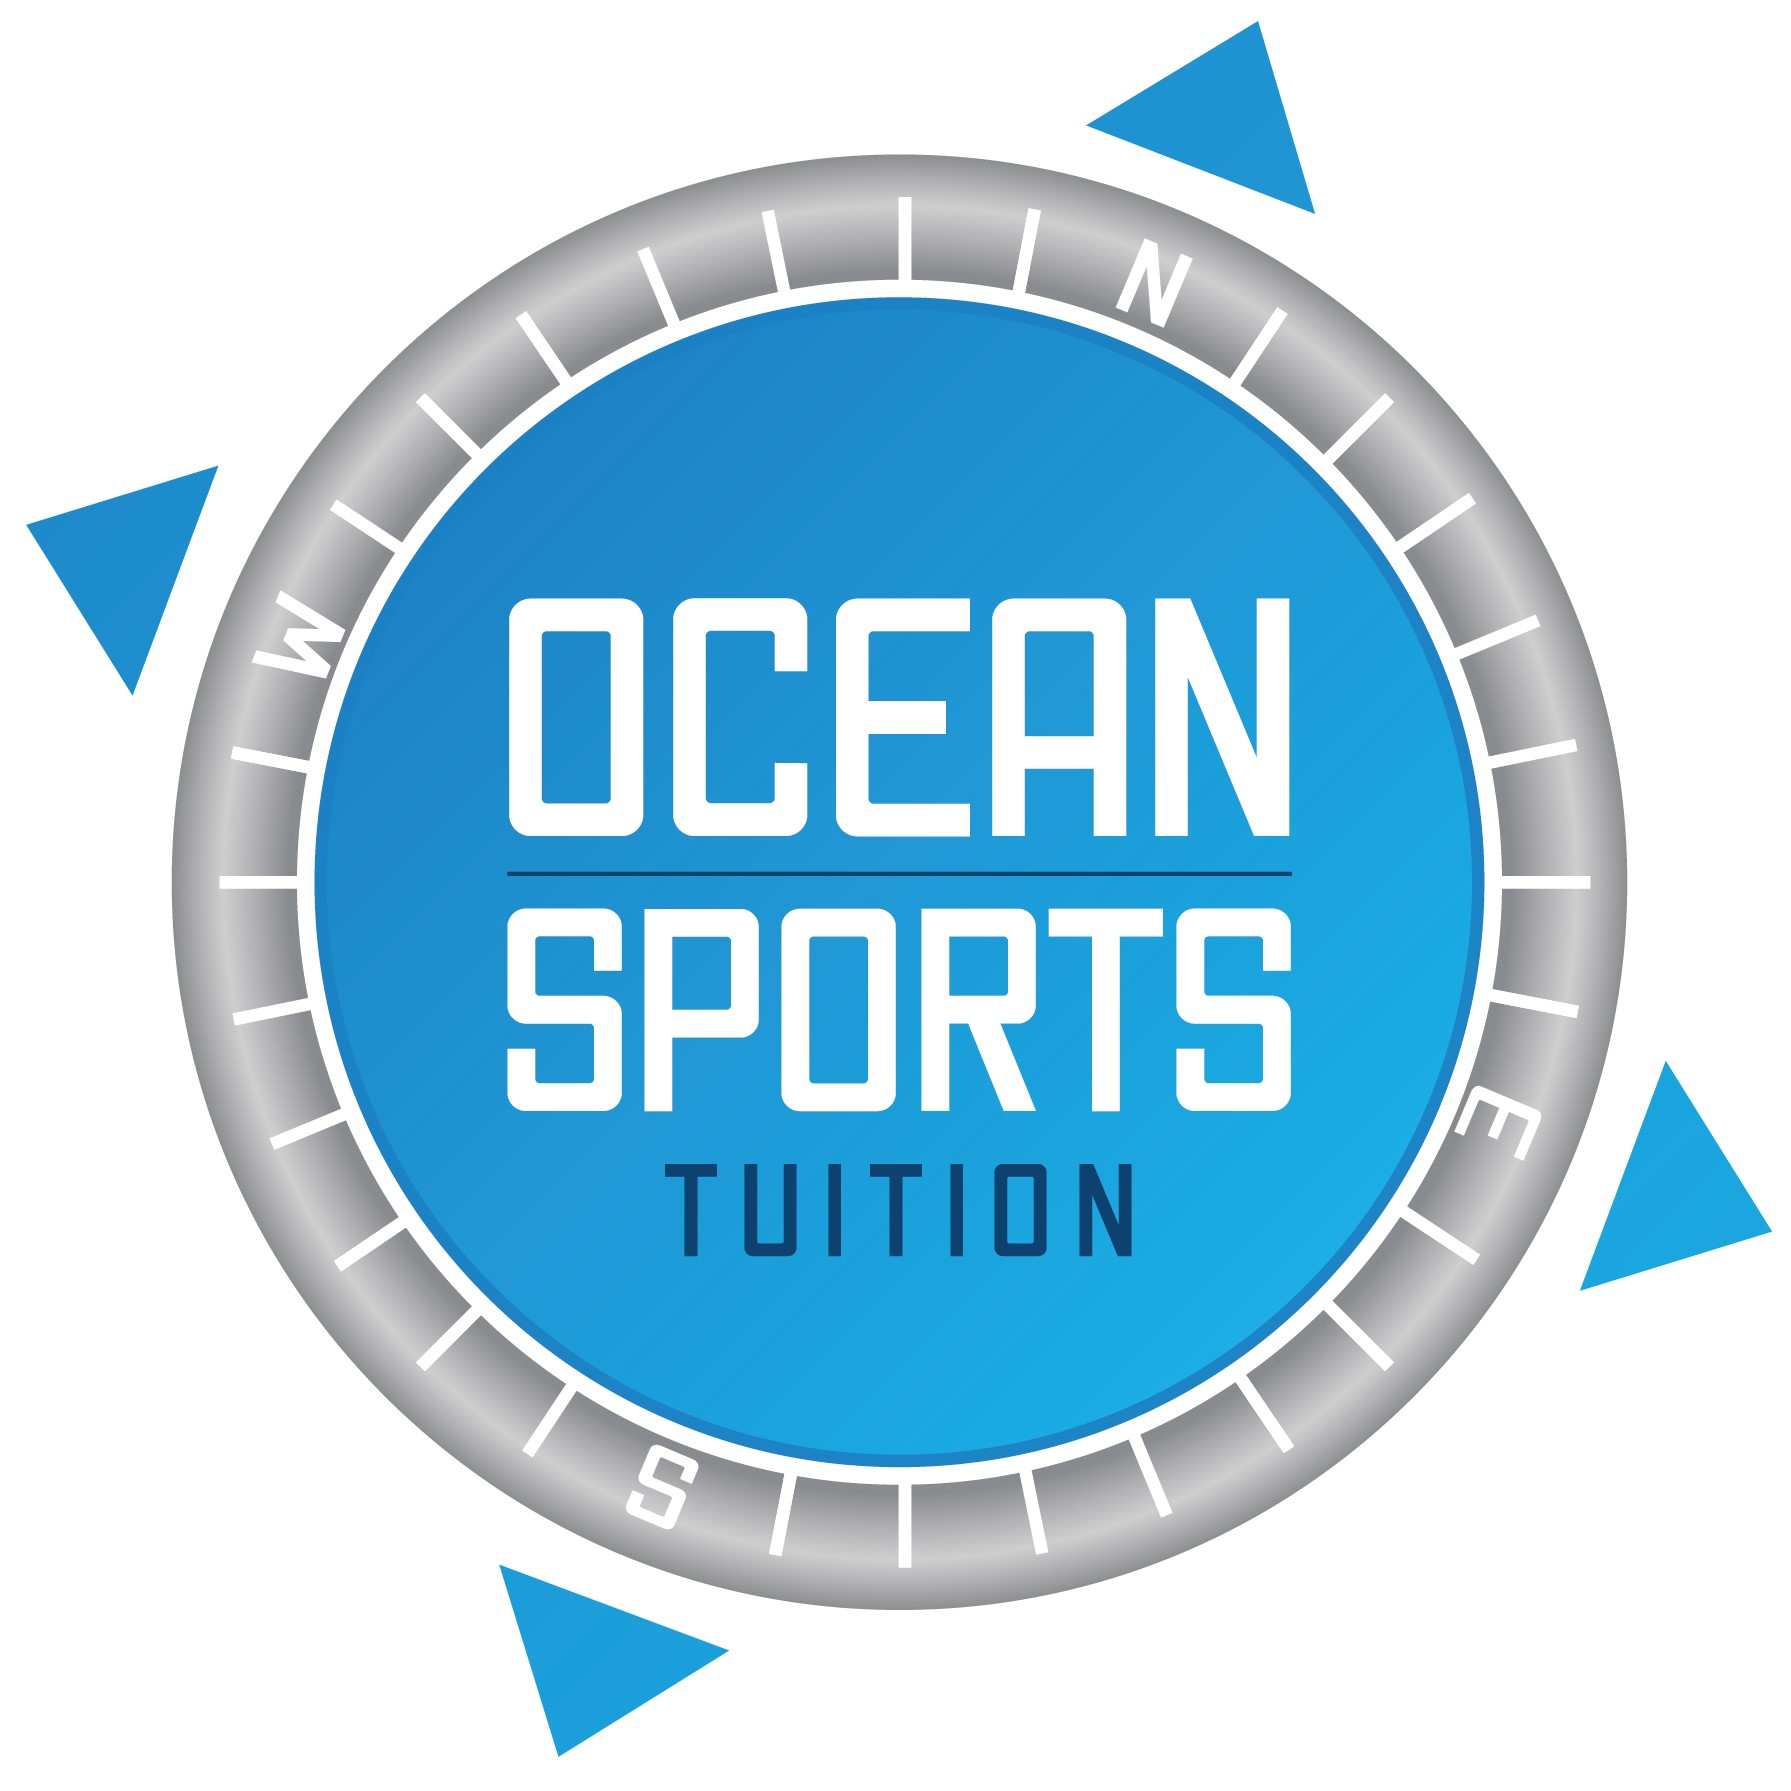 OCEAN SPORTS TUITION LOGO-cropped